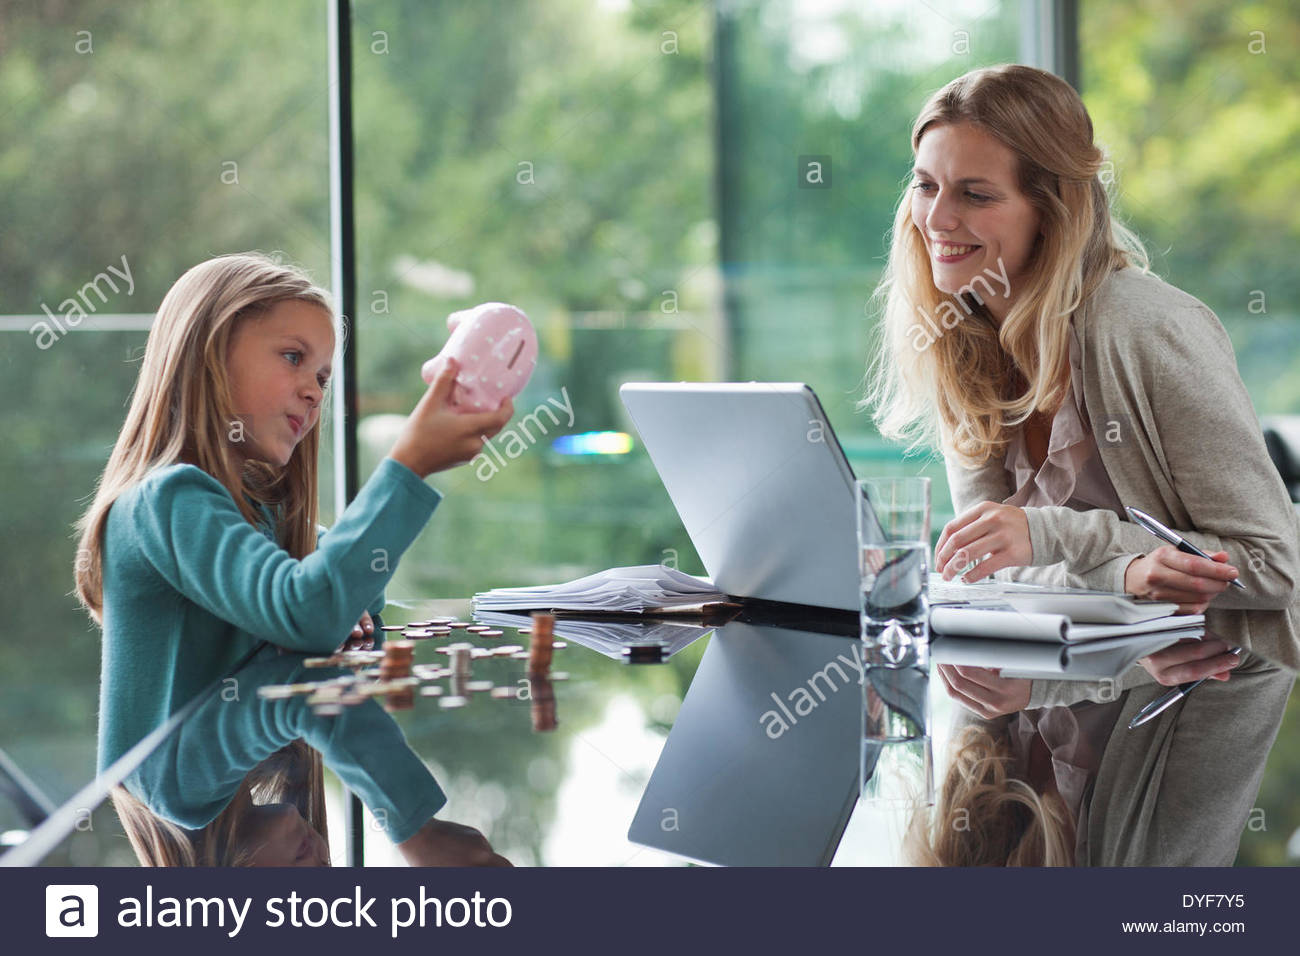 Mother watching daughter count coins from piggy bank - Stock Image